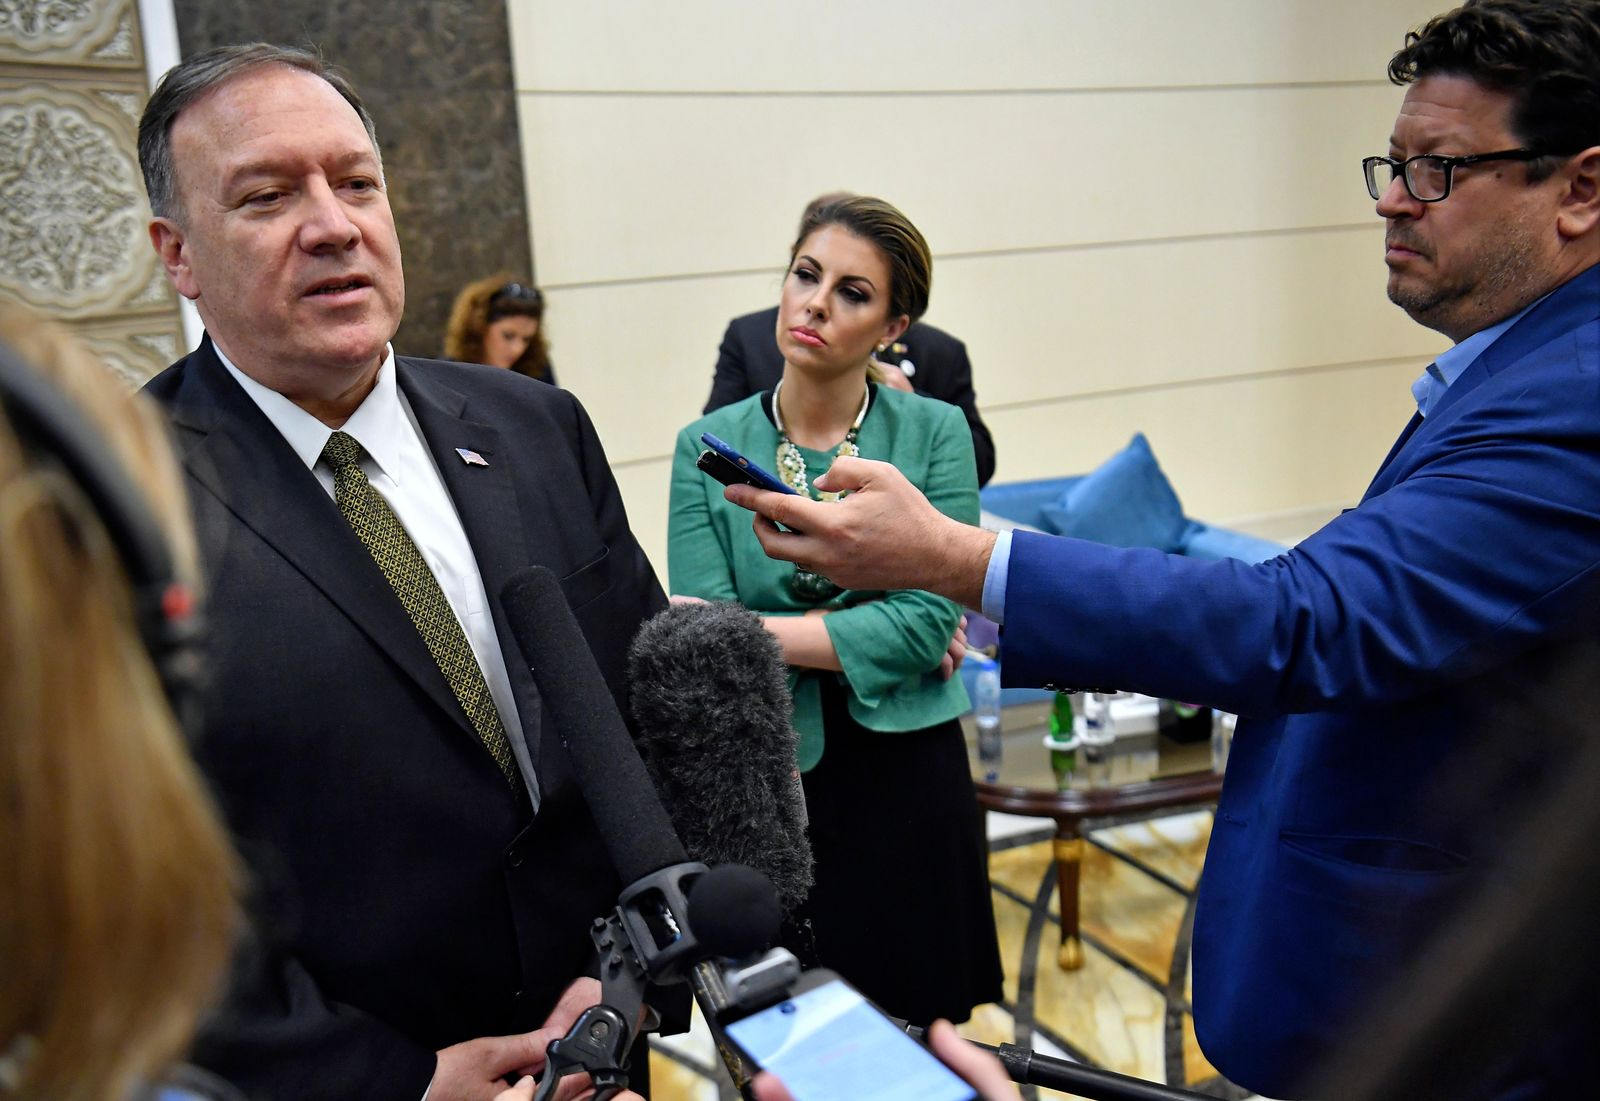 U.S. Secretary of State Mike Pompeo speaks to the media before departing from al-Bateen Air Base in Abu Dhabi, United Arab Emirates, Thursday, Sept. 19, 2019, as State Department spokesperson Morgan Ortagus, second from right, listens. (Mandel Ngan/Pool via AP)